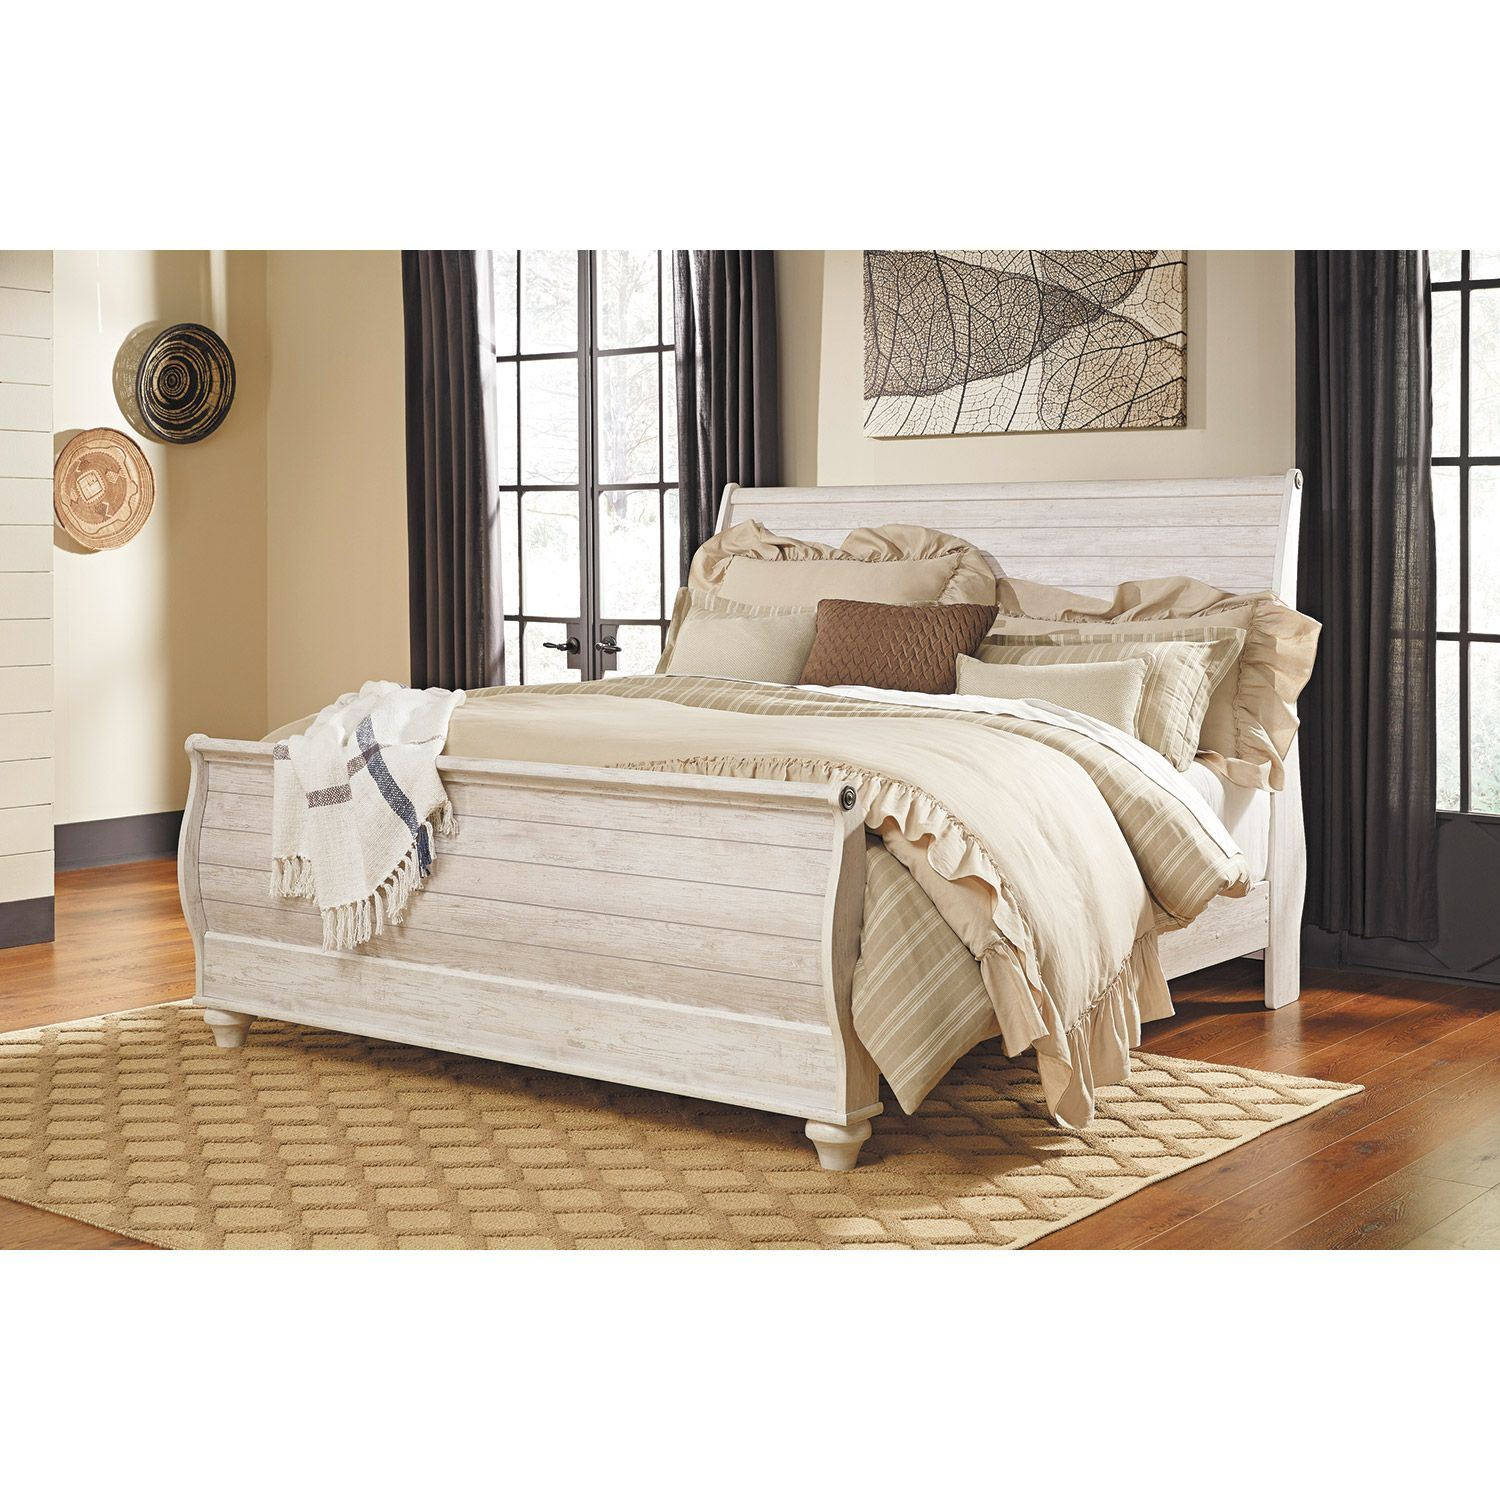 Willowton queen sleigh bed b267 qsleighbed ashley - Ashley furniture sleigh bedroom set ...